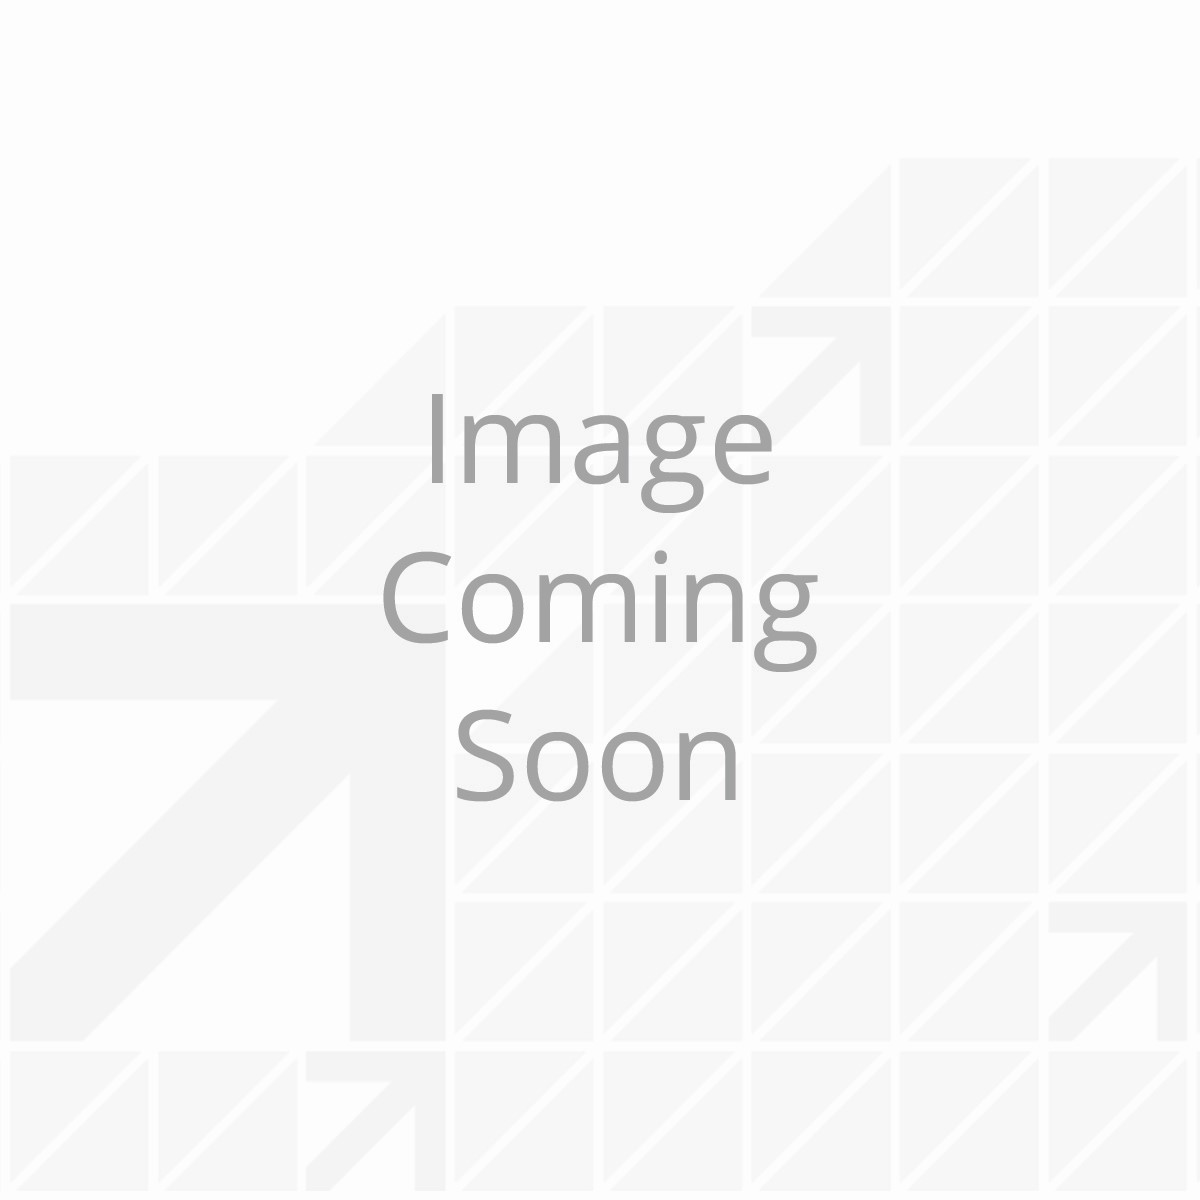 Dust Cap for Standard Axle Hub - 7,000 to 8,000 lbs.